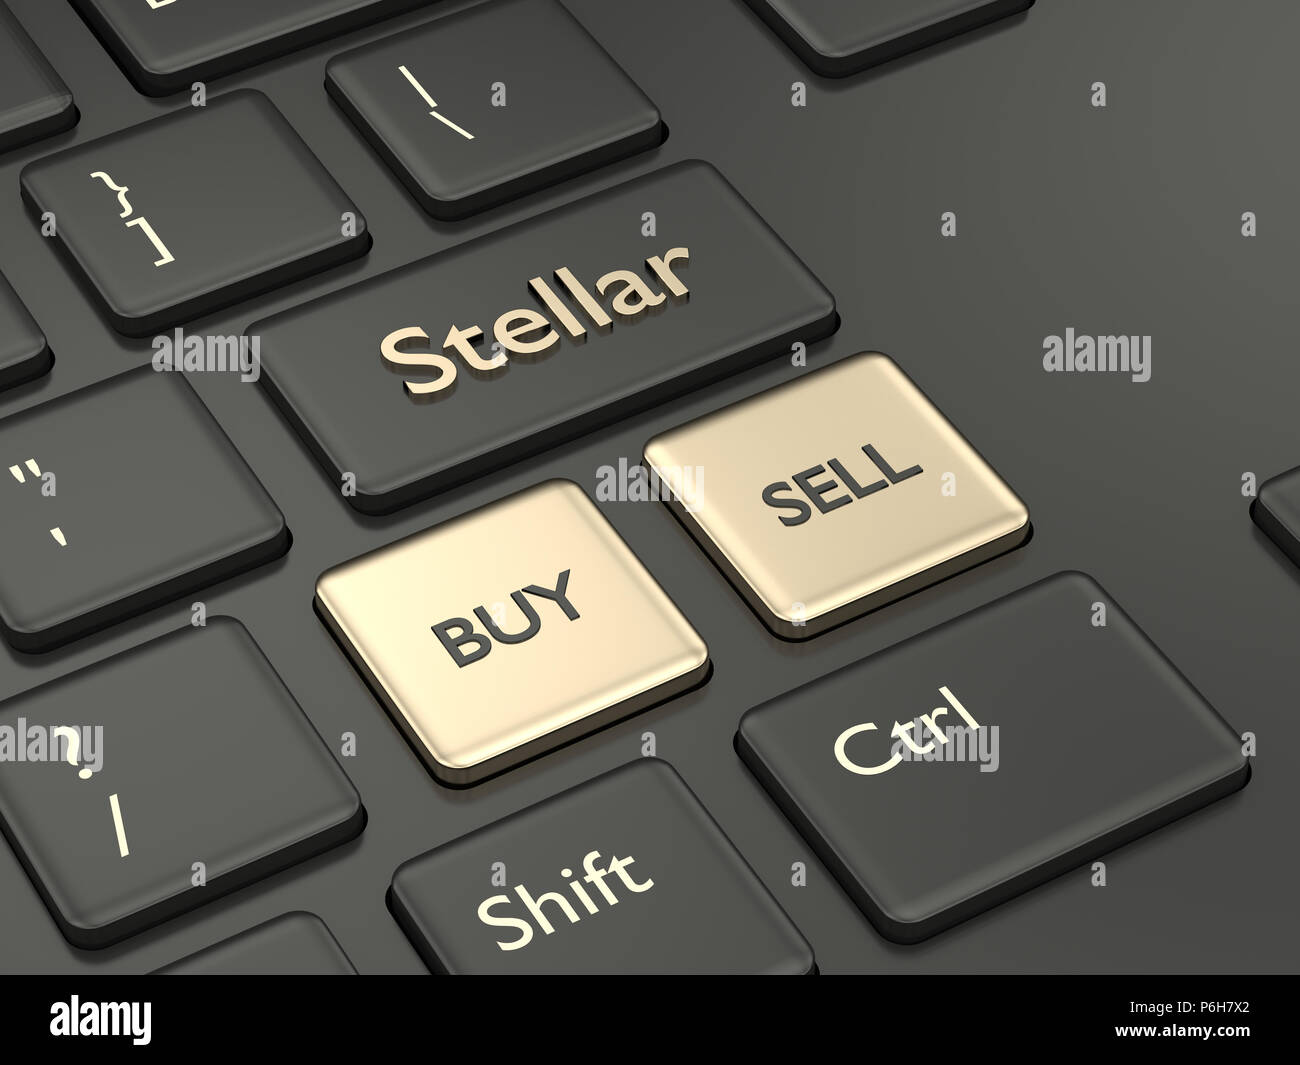 3d render of computer keyboard with Stellar button. Cryptocurrencies concept. Stock Photo